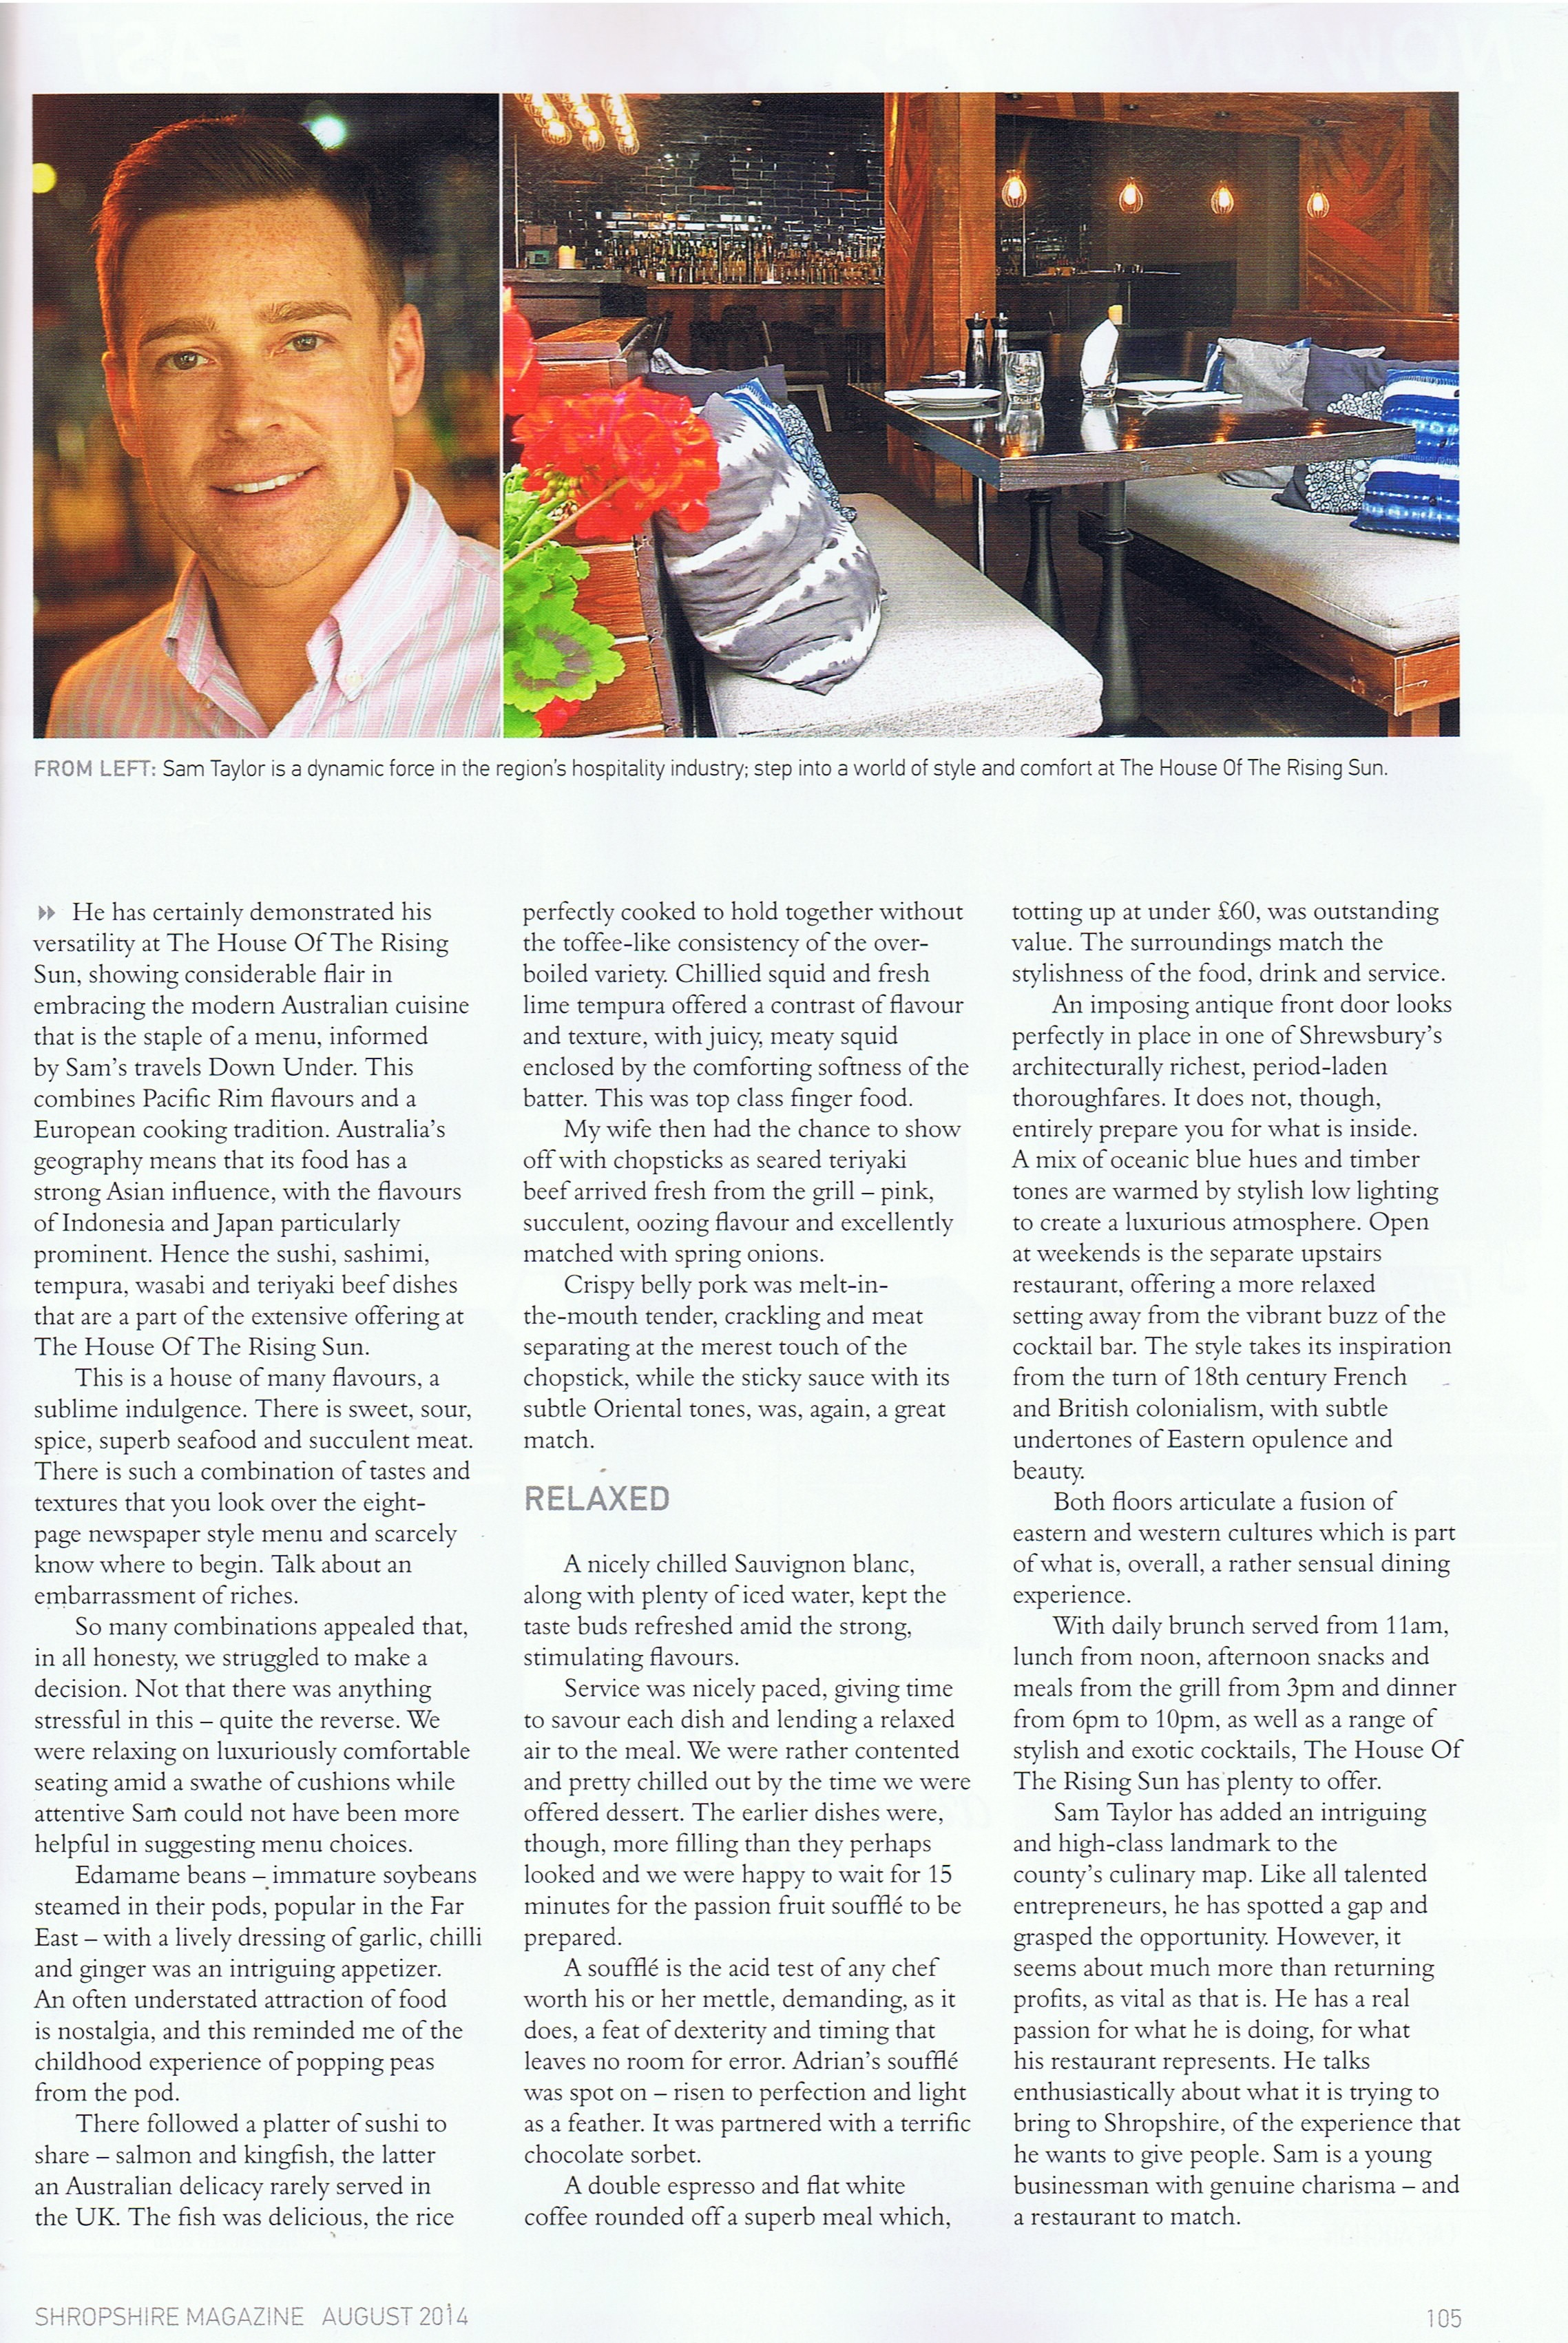 Connor PR specialist in launch and event PR has secured a fantastic review  in this month s Shropshire Magazine for client House of the Rising Sun f51c8ac9f